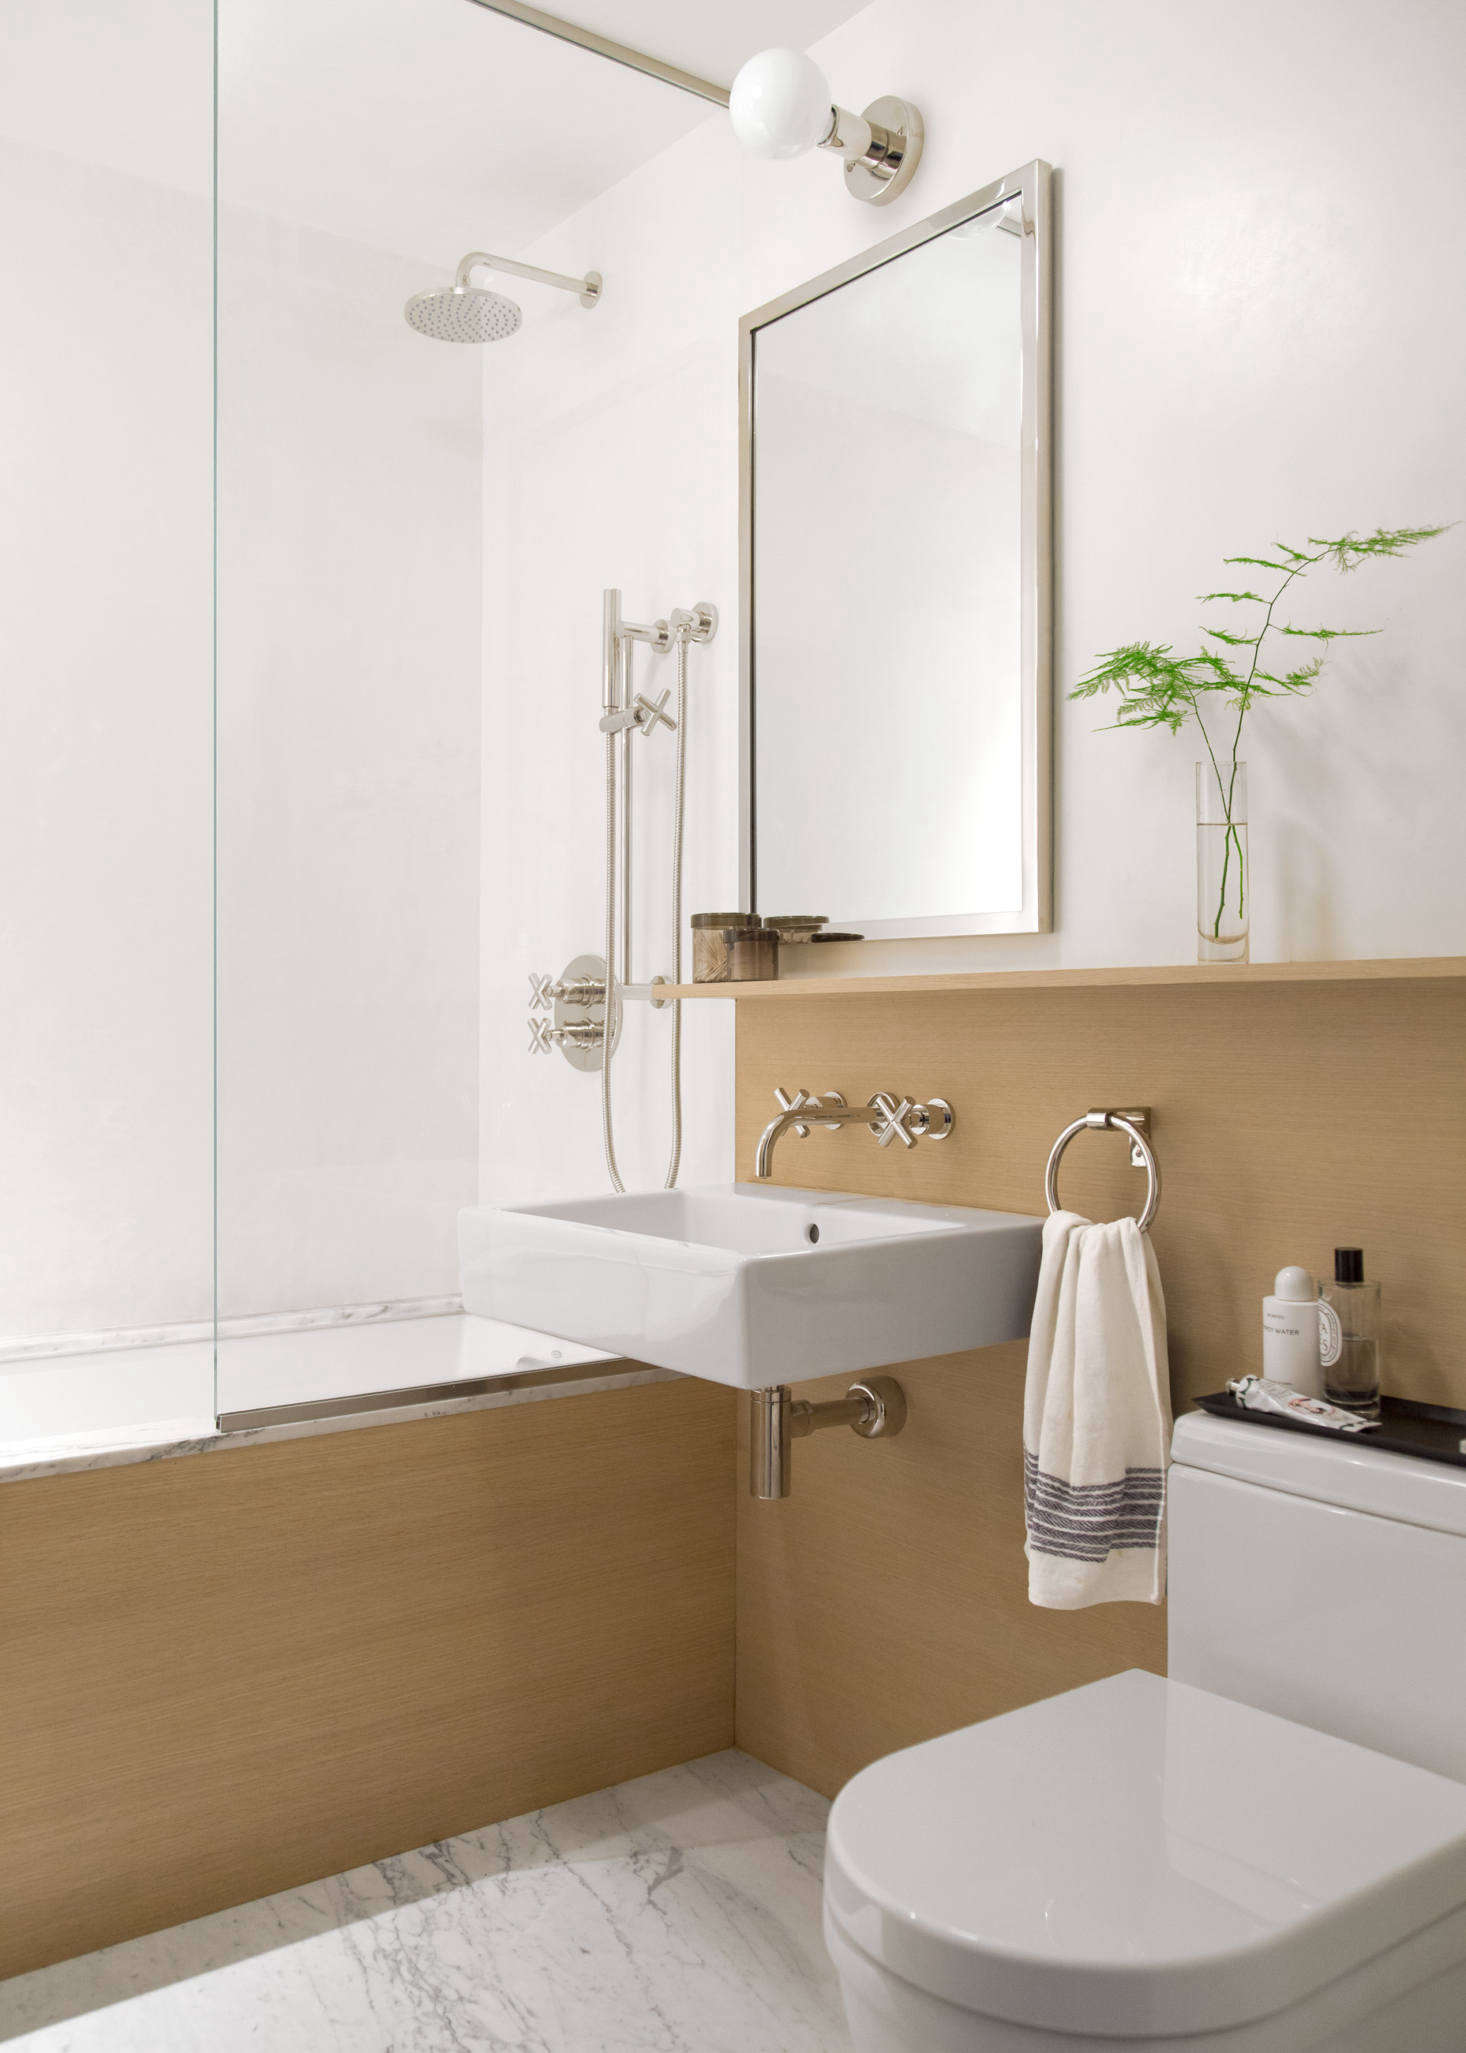 Before & After: A Trend-Proof Bath Remodel In Brooklyn - Remodelista